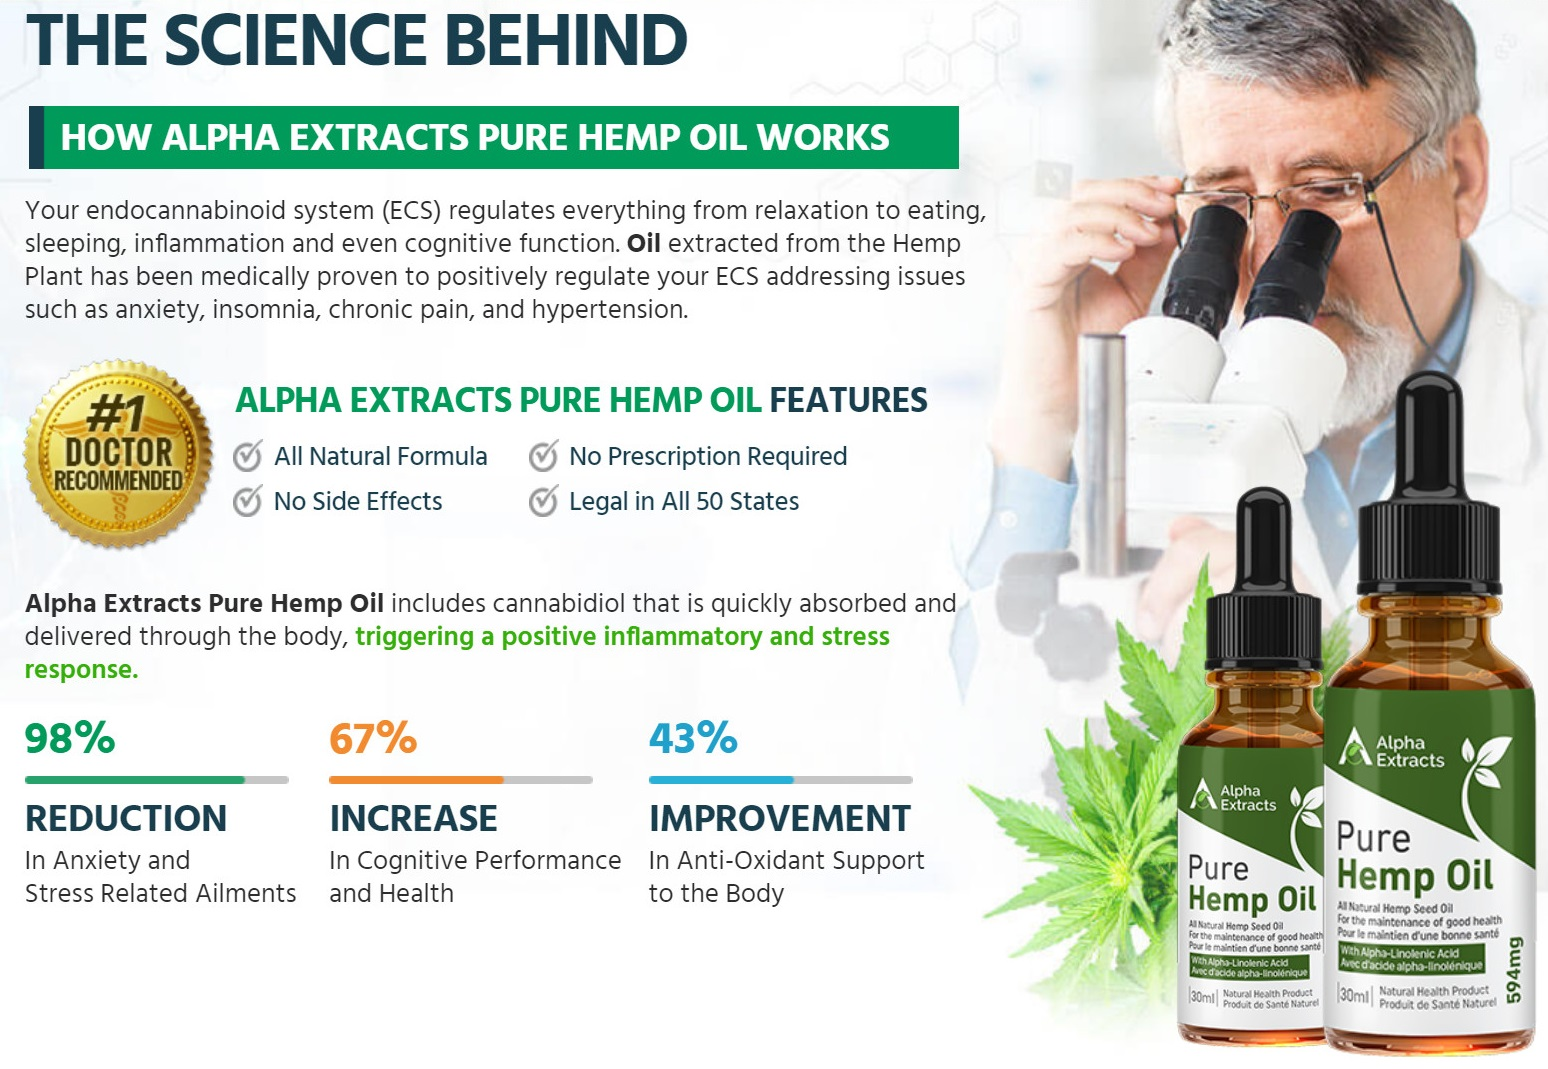 Alpha Extracts Pure Hemp Oil Canada Reviews & Cost - PromoSimple Giveaways  Directory